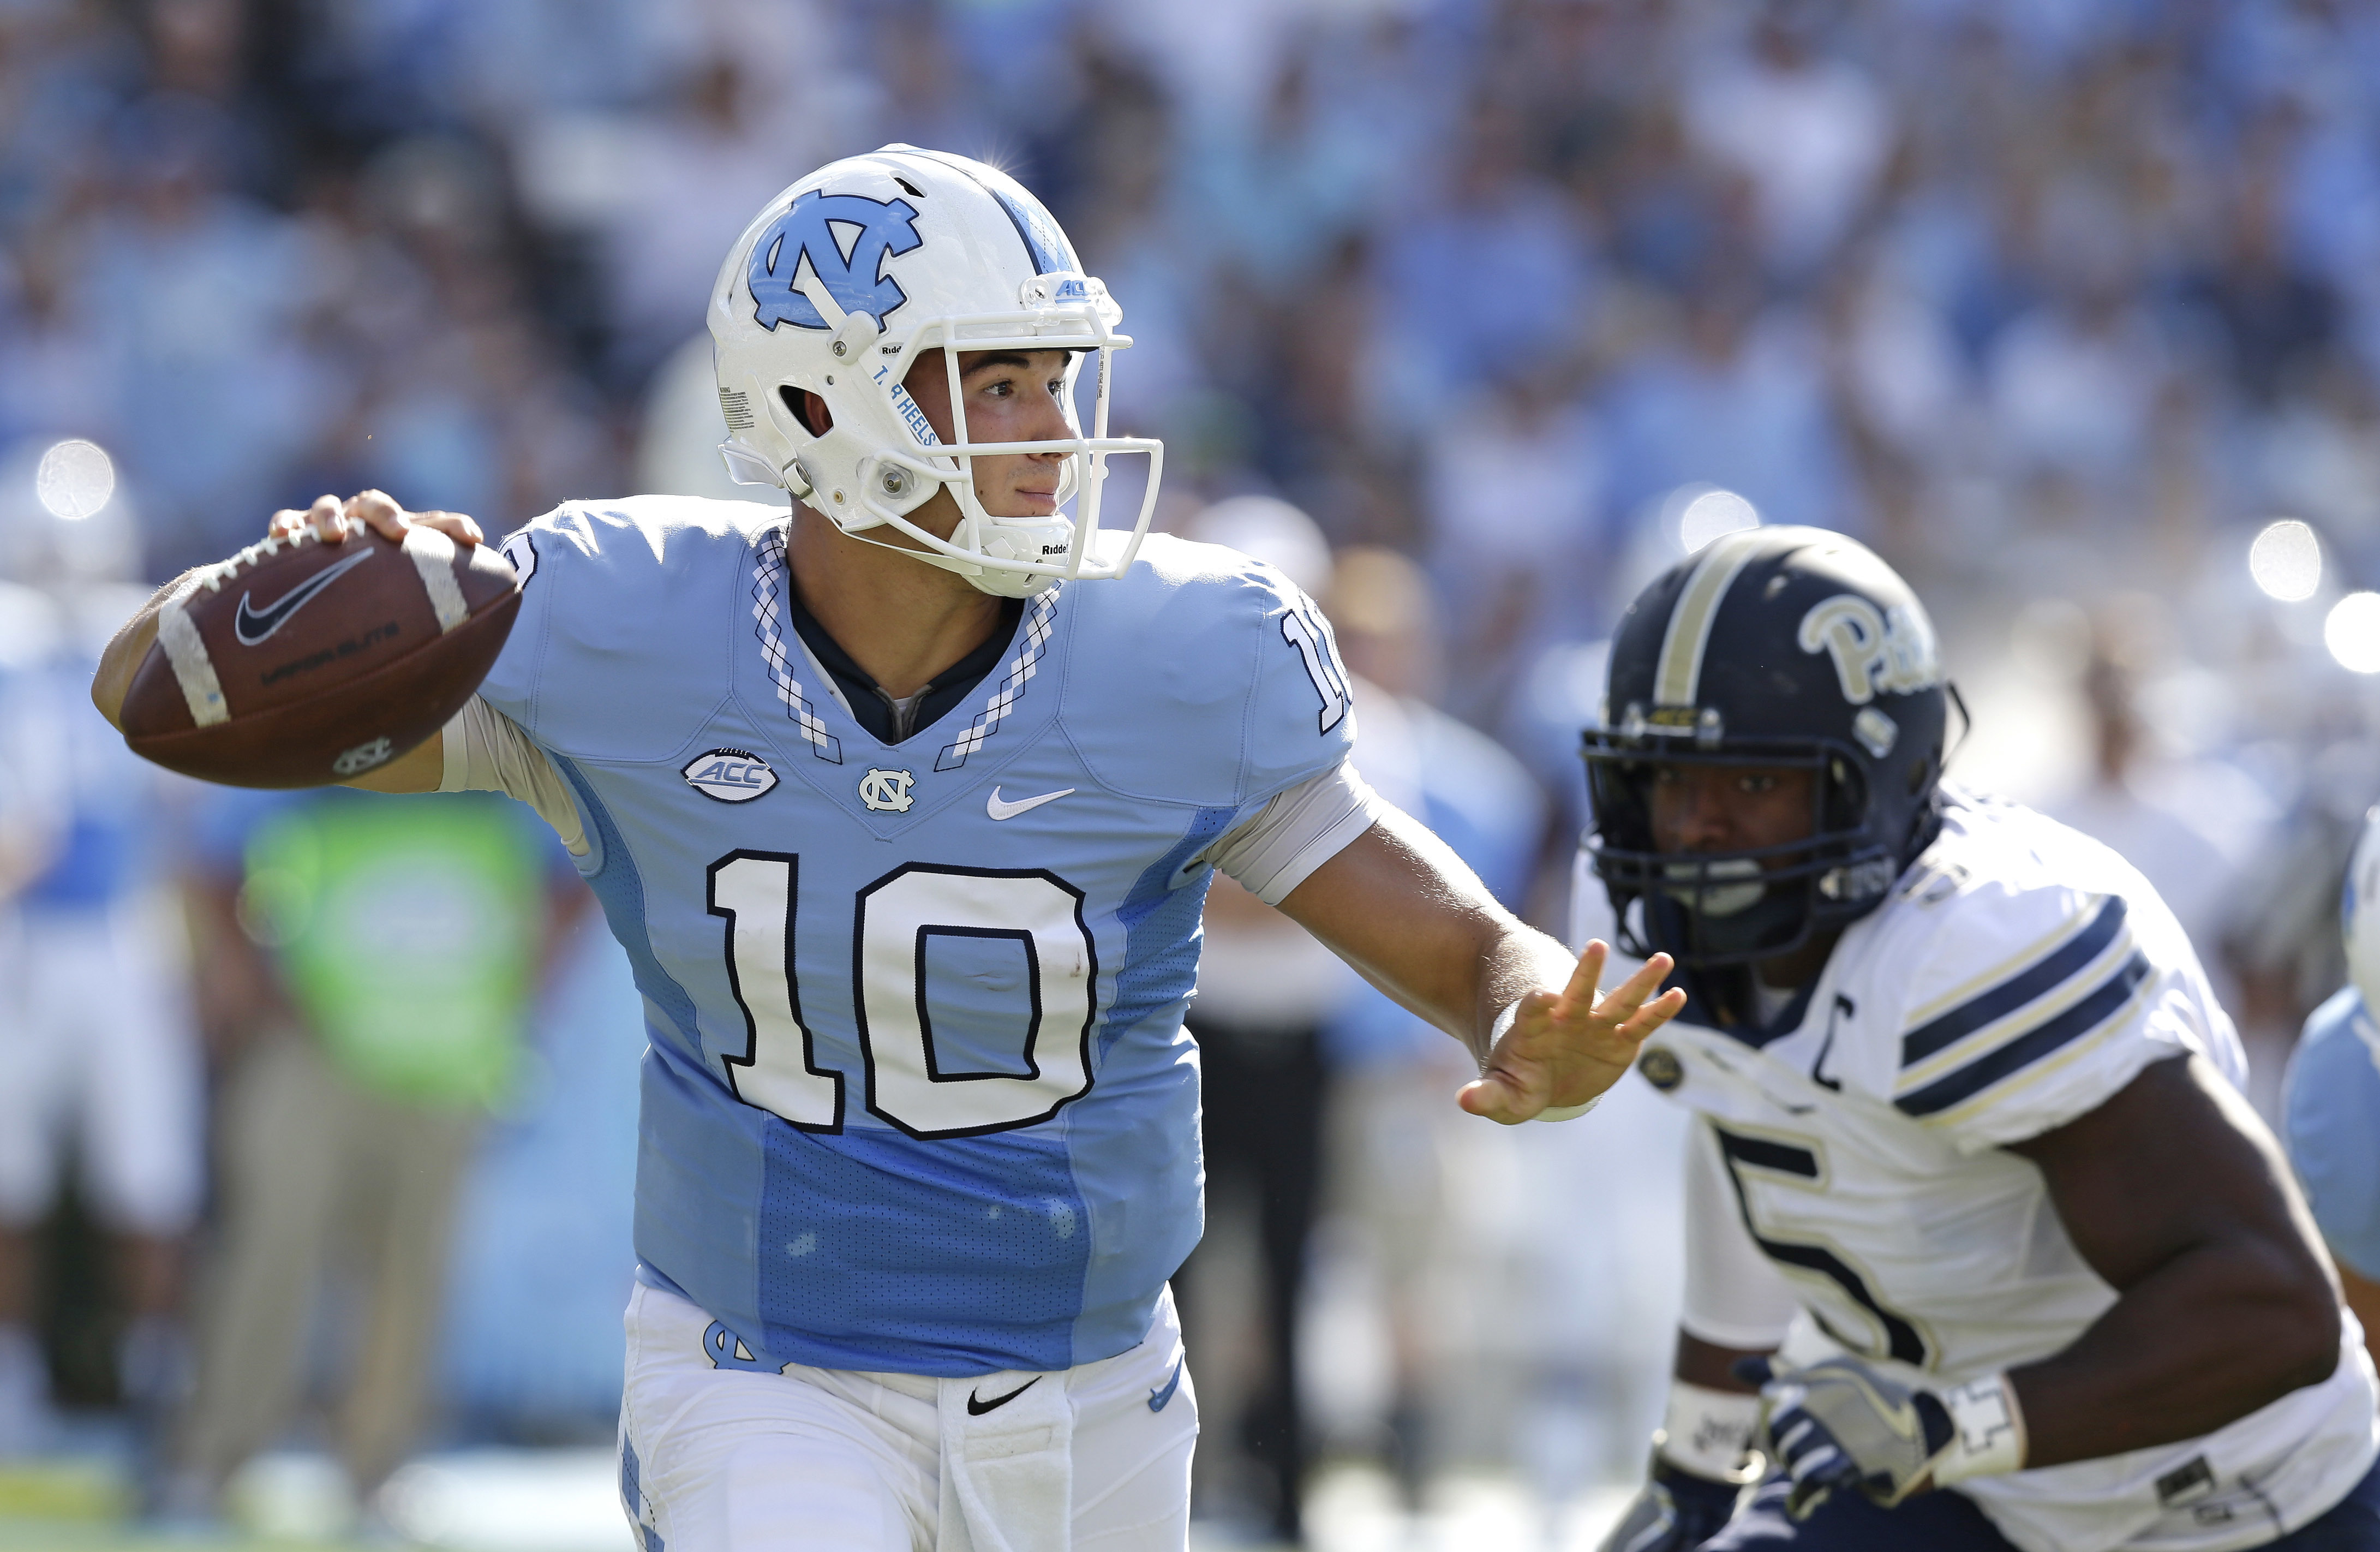 North Carolina quarterback Mitch Trubisky (10) passes as Pittsburgh's Ejuan Price (5) rushes during the first half of an NCAA college football game in Chapel Hill, N.C., Saturday, Sept. 24, 2016. (AP Photo/Gerry Broome)